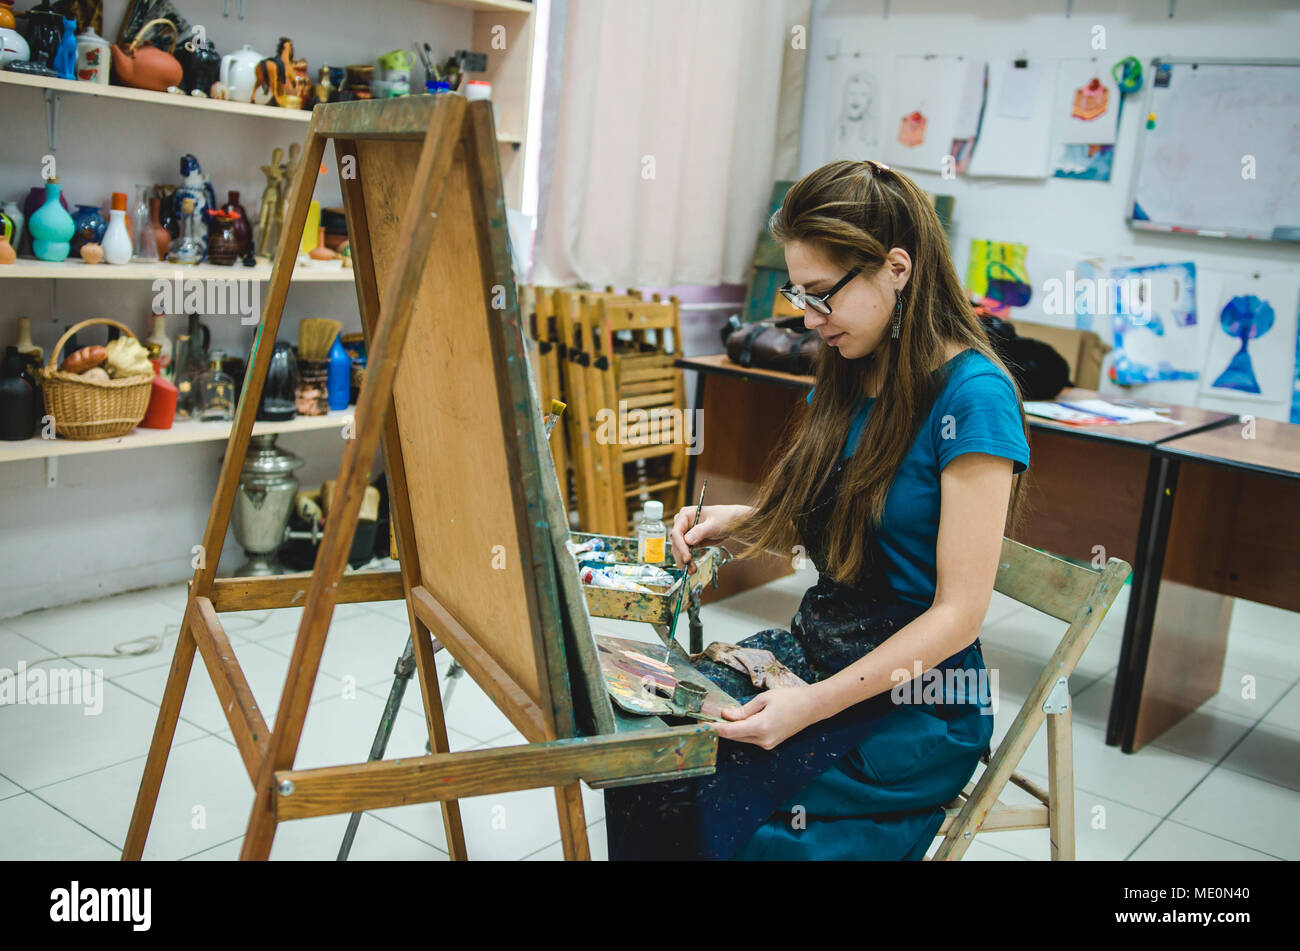 Female painter drawing in art studio using easel - Stock Image